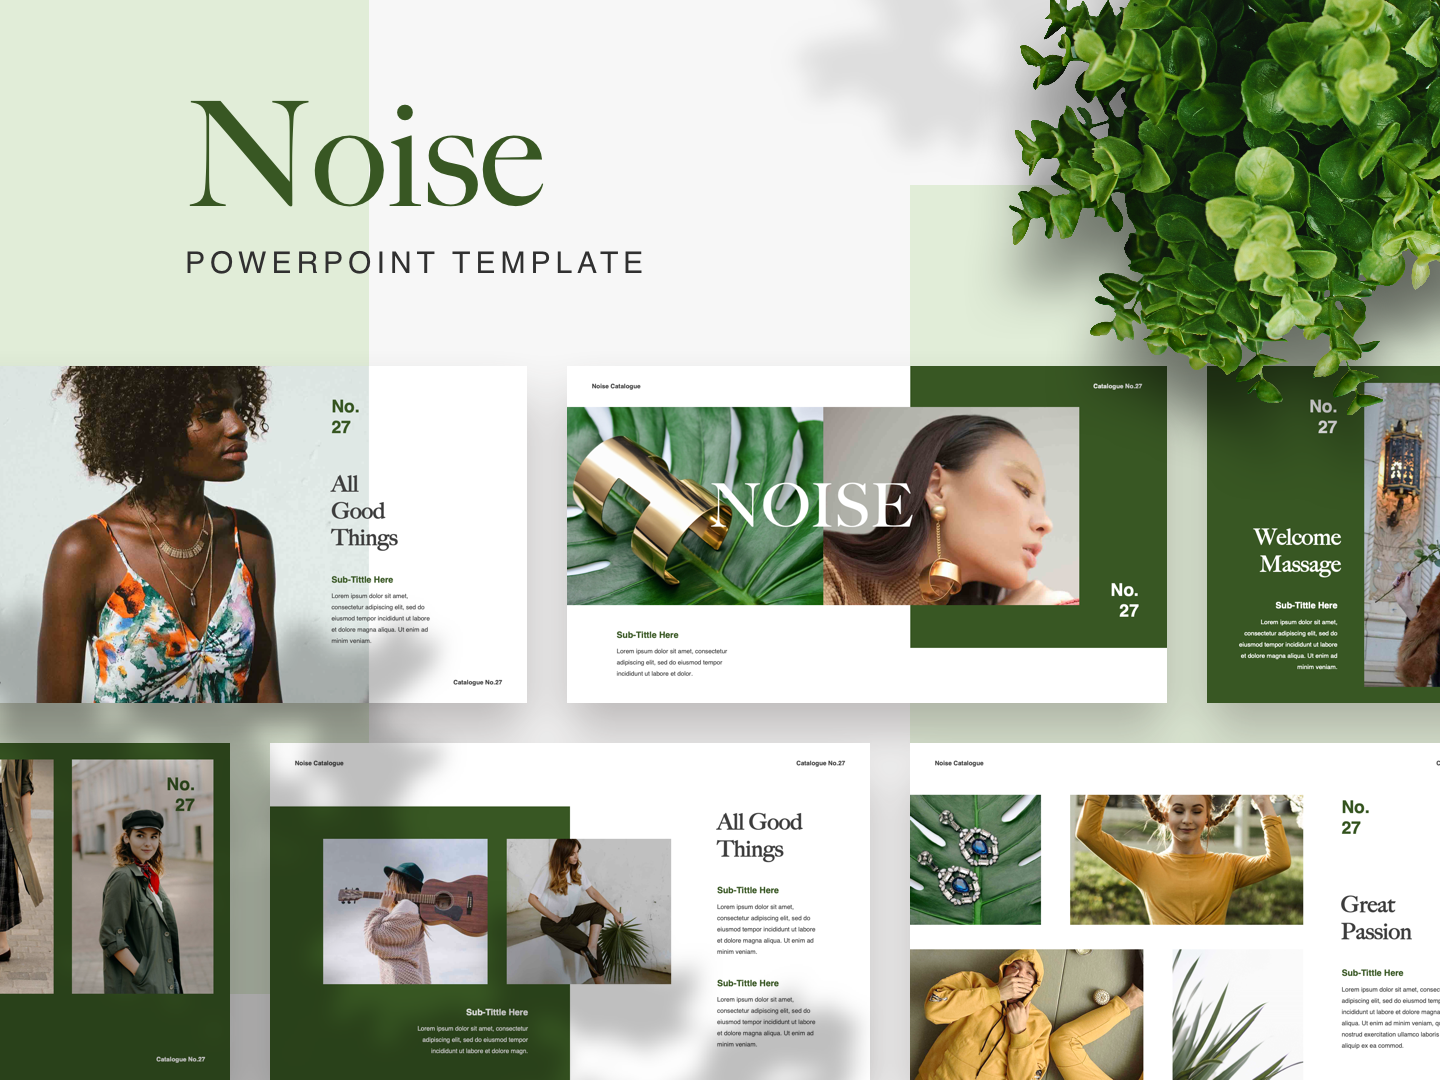 NOISE PowerPoint Template